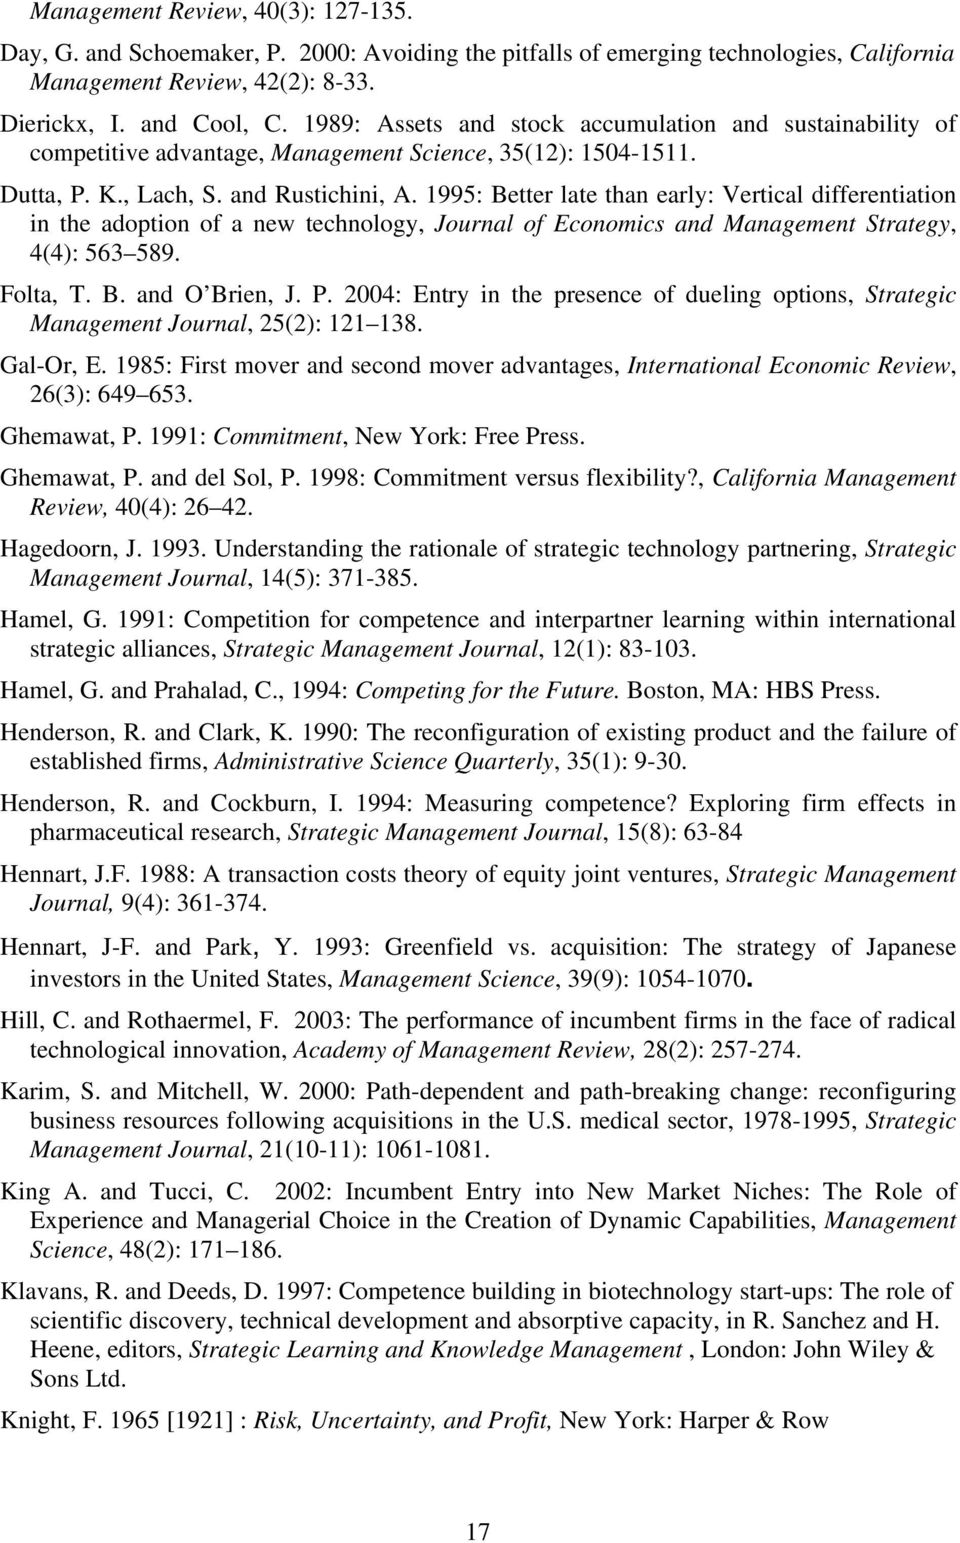 1995: Better late than early: Vertical differentiation in the adoption of a new technology, Journal of Economics and Management Strategy, 4(4): 563 589. Folta, T. B. and O Brien, J. P.